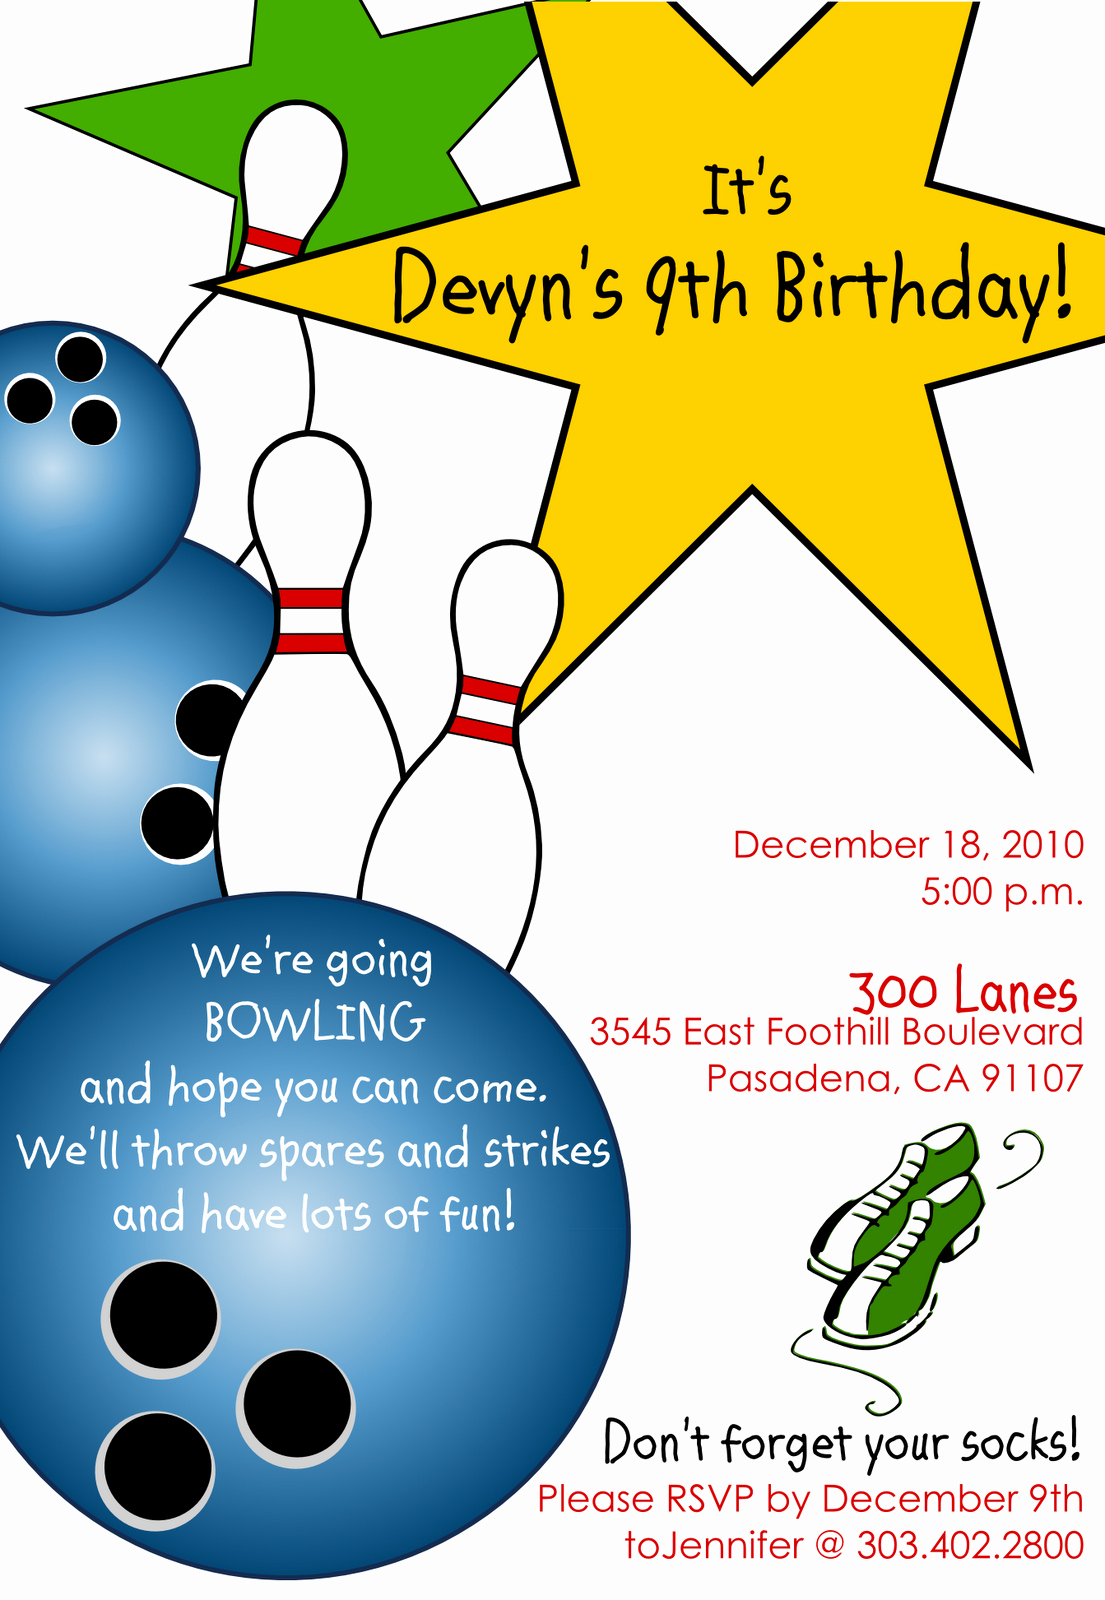 Bowling Party Invitation Templates New 40th Birthday Ideas Birthday Invitation Templates Bowling